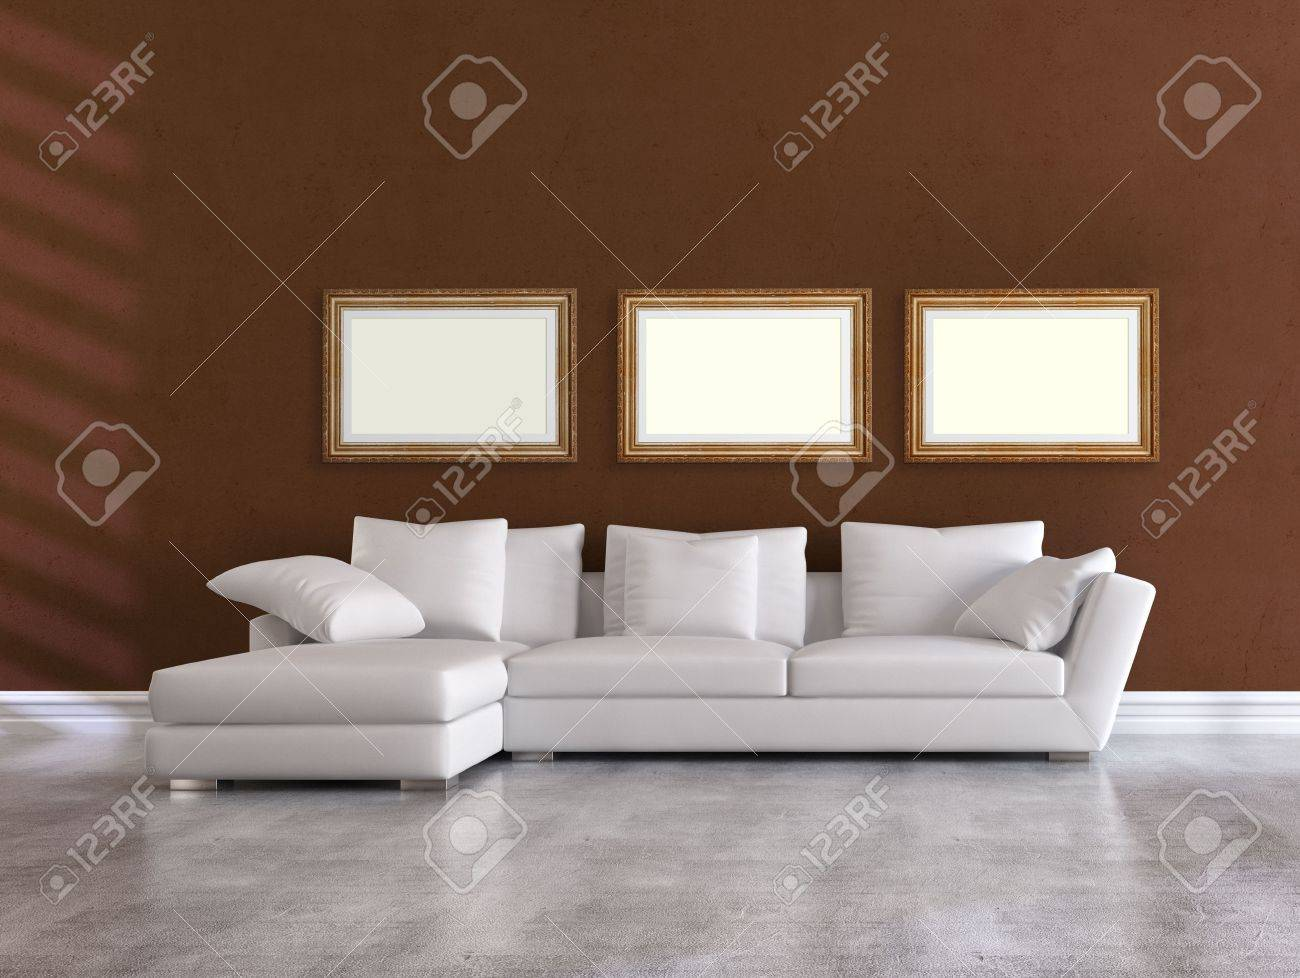 white elegant couch in a minimalist brown living room - rendering Stock Photo - 8064772